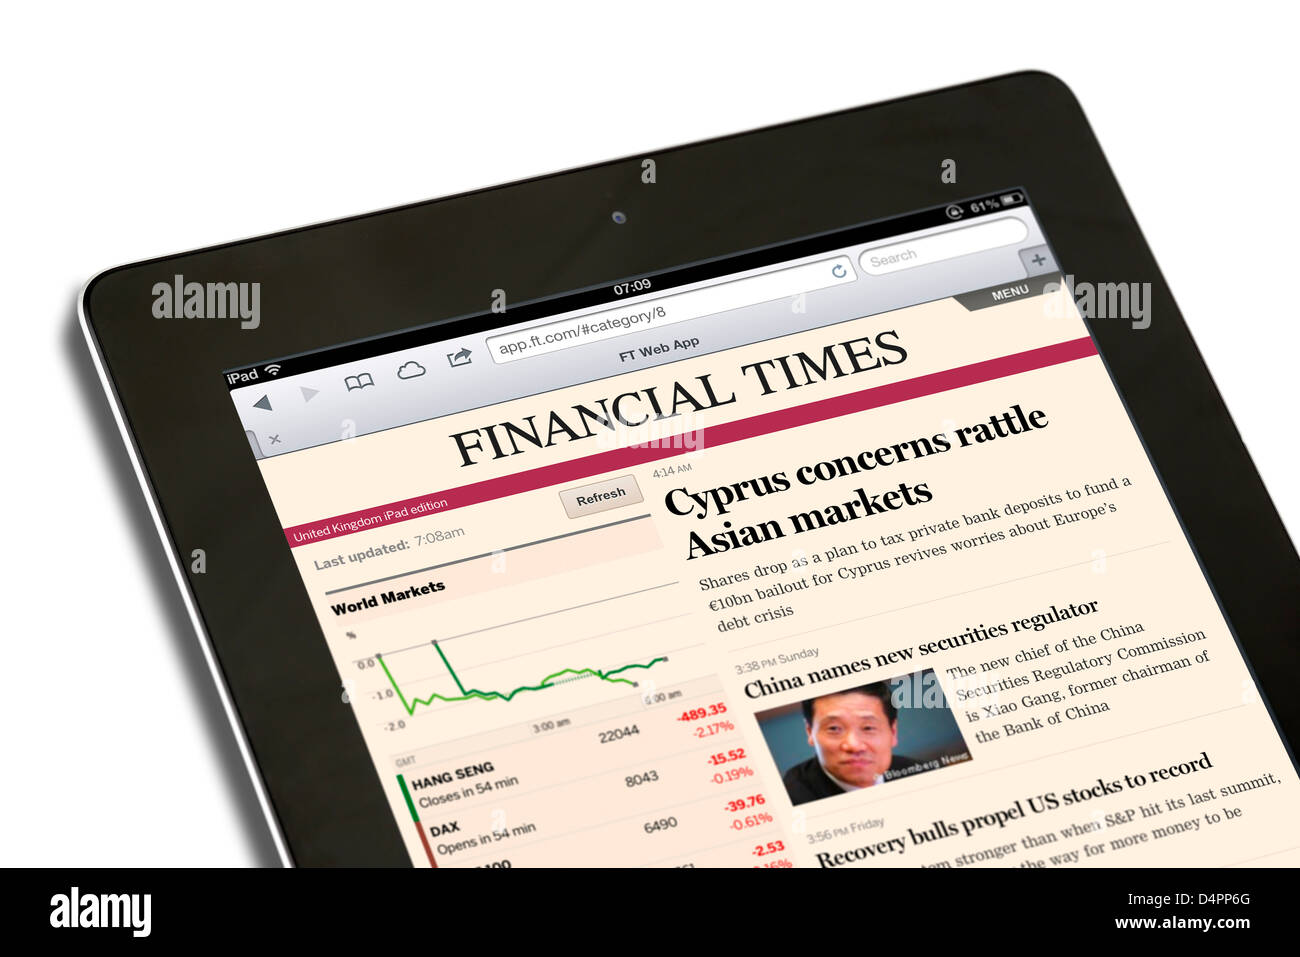 Reading the iPad web app edition of the Financial Times newspaper on a 4th Generation iPad, UK - Stock Image